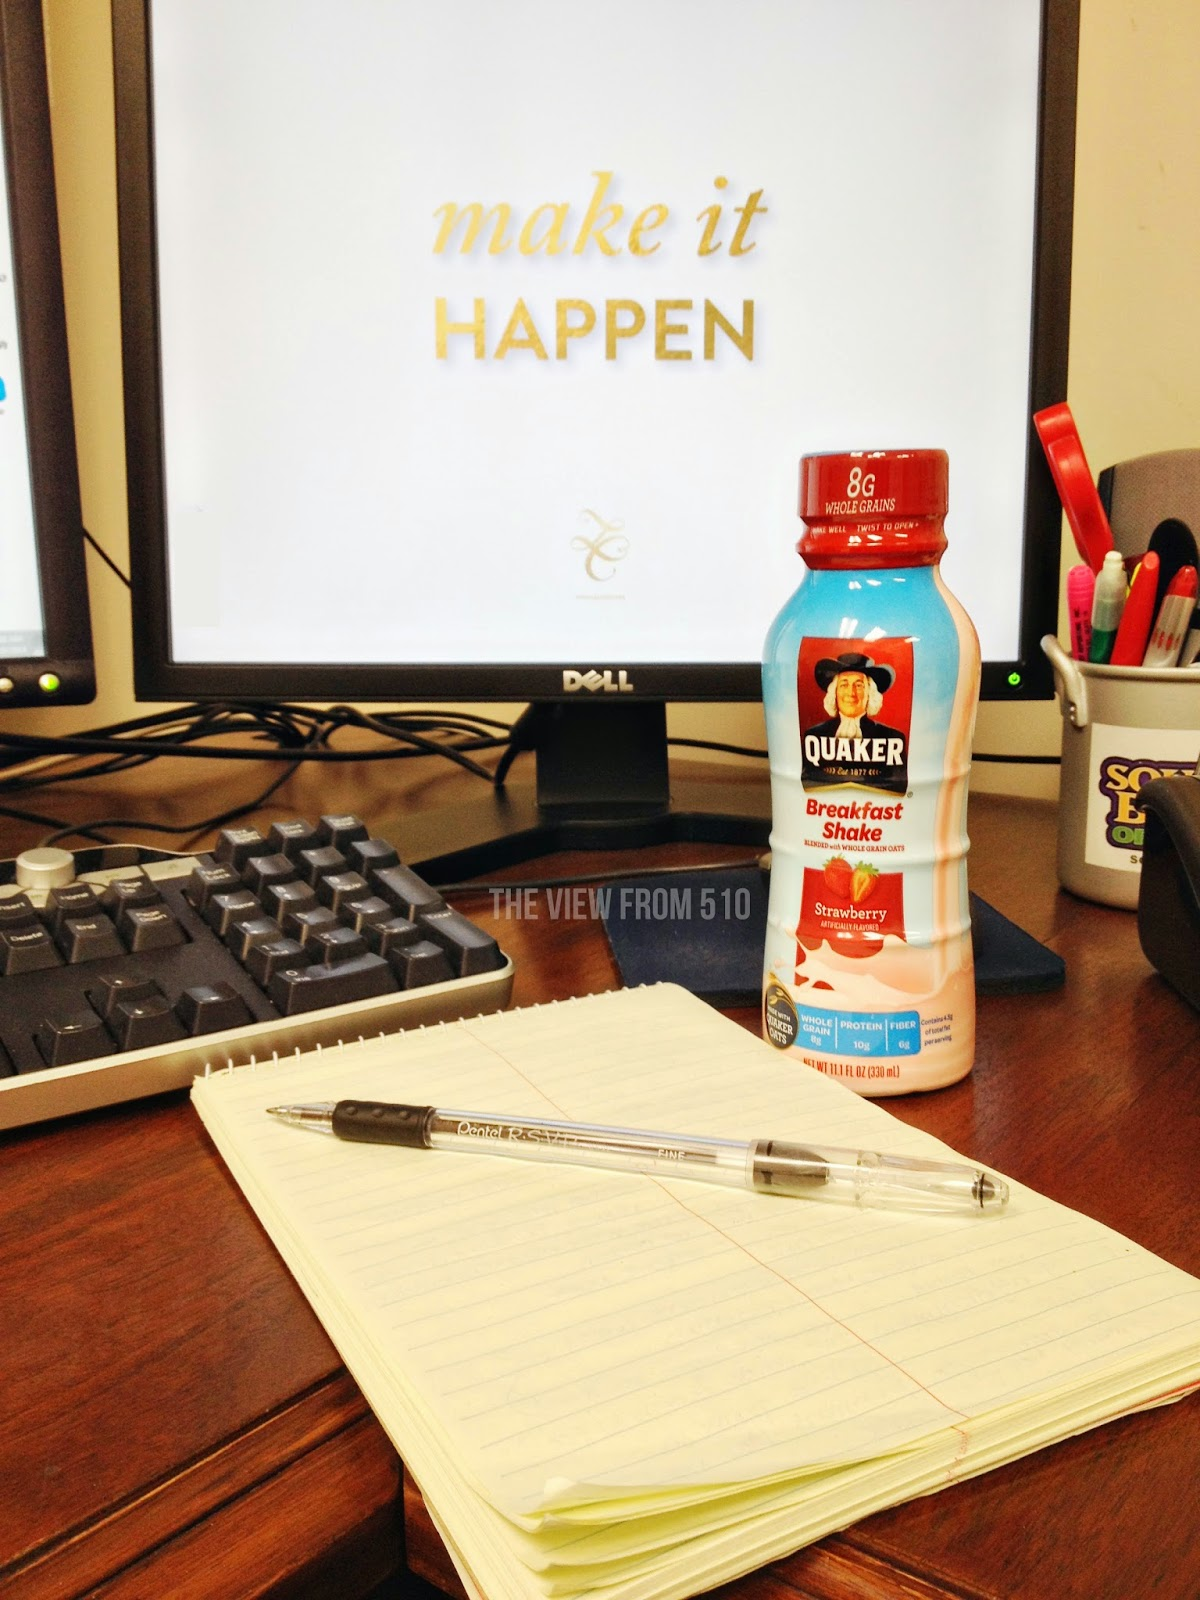 Mornings with #QuakerShakes #sponsored